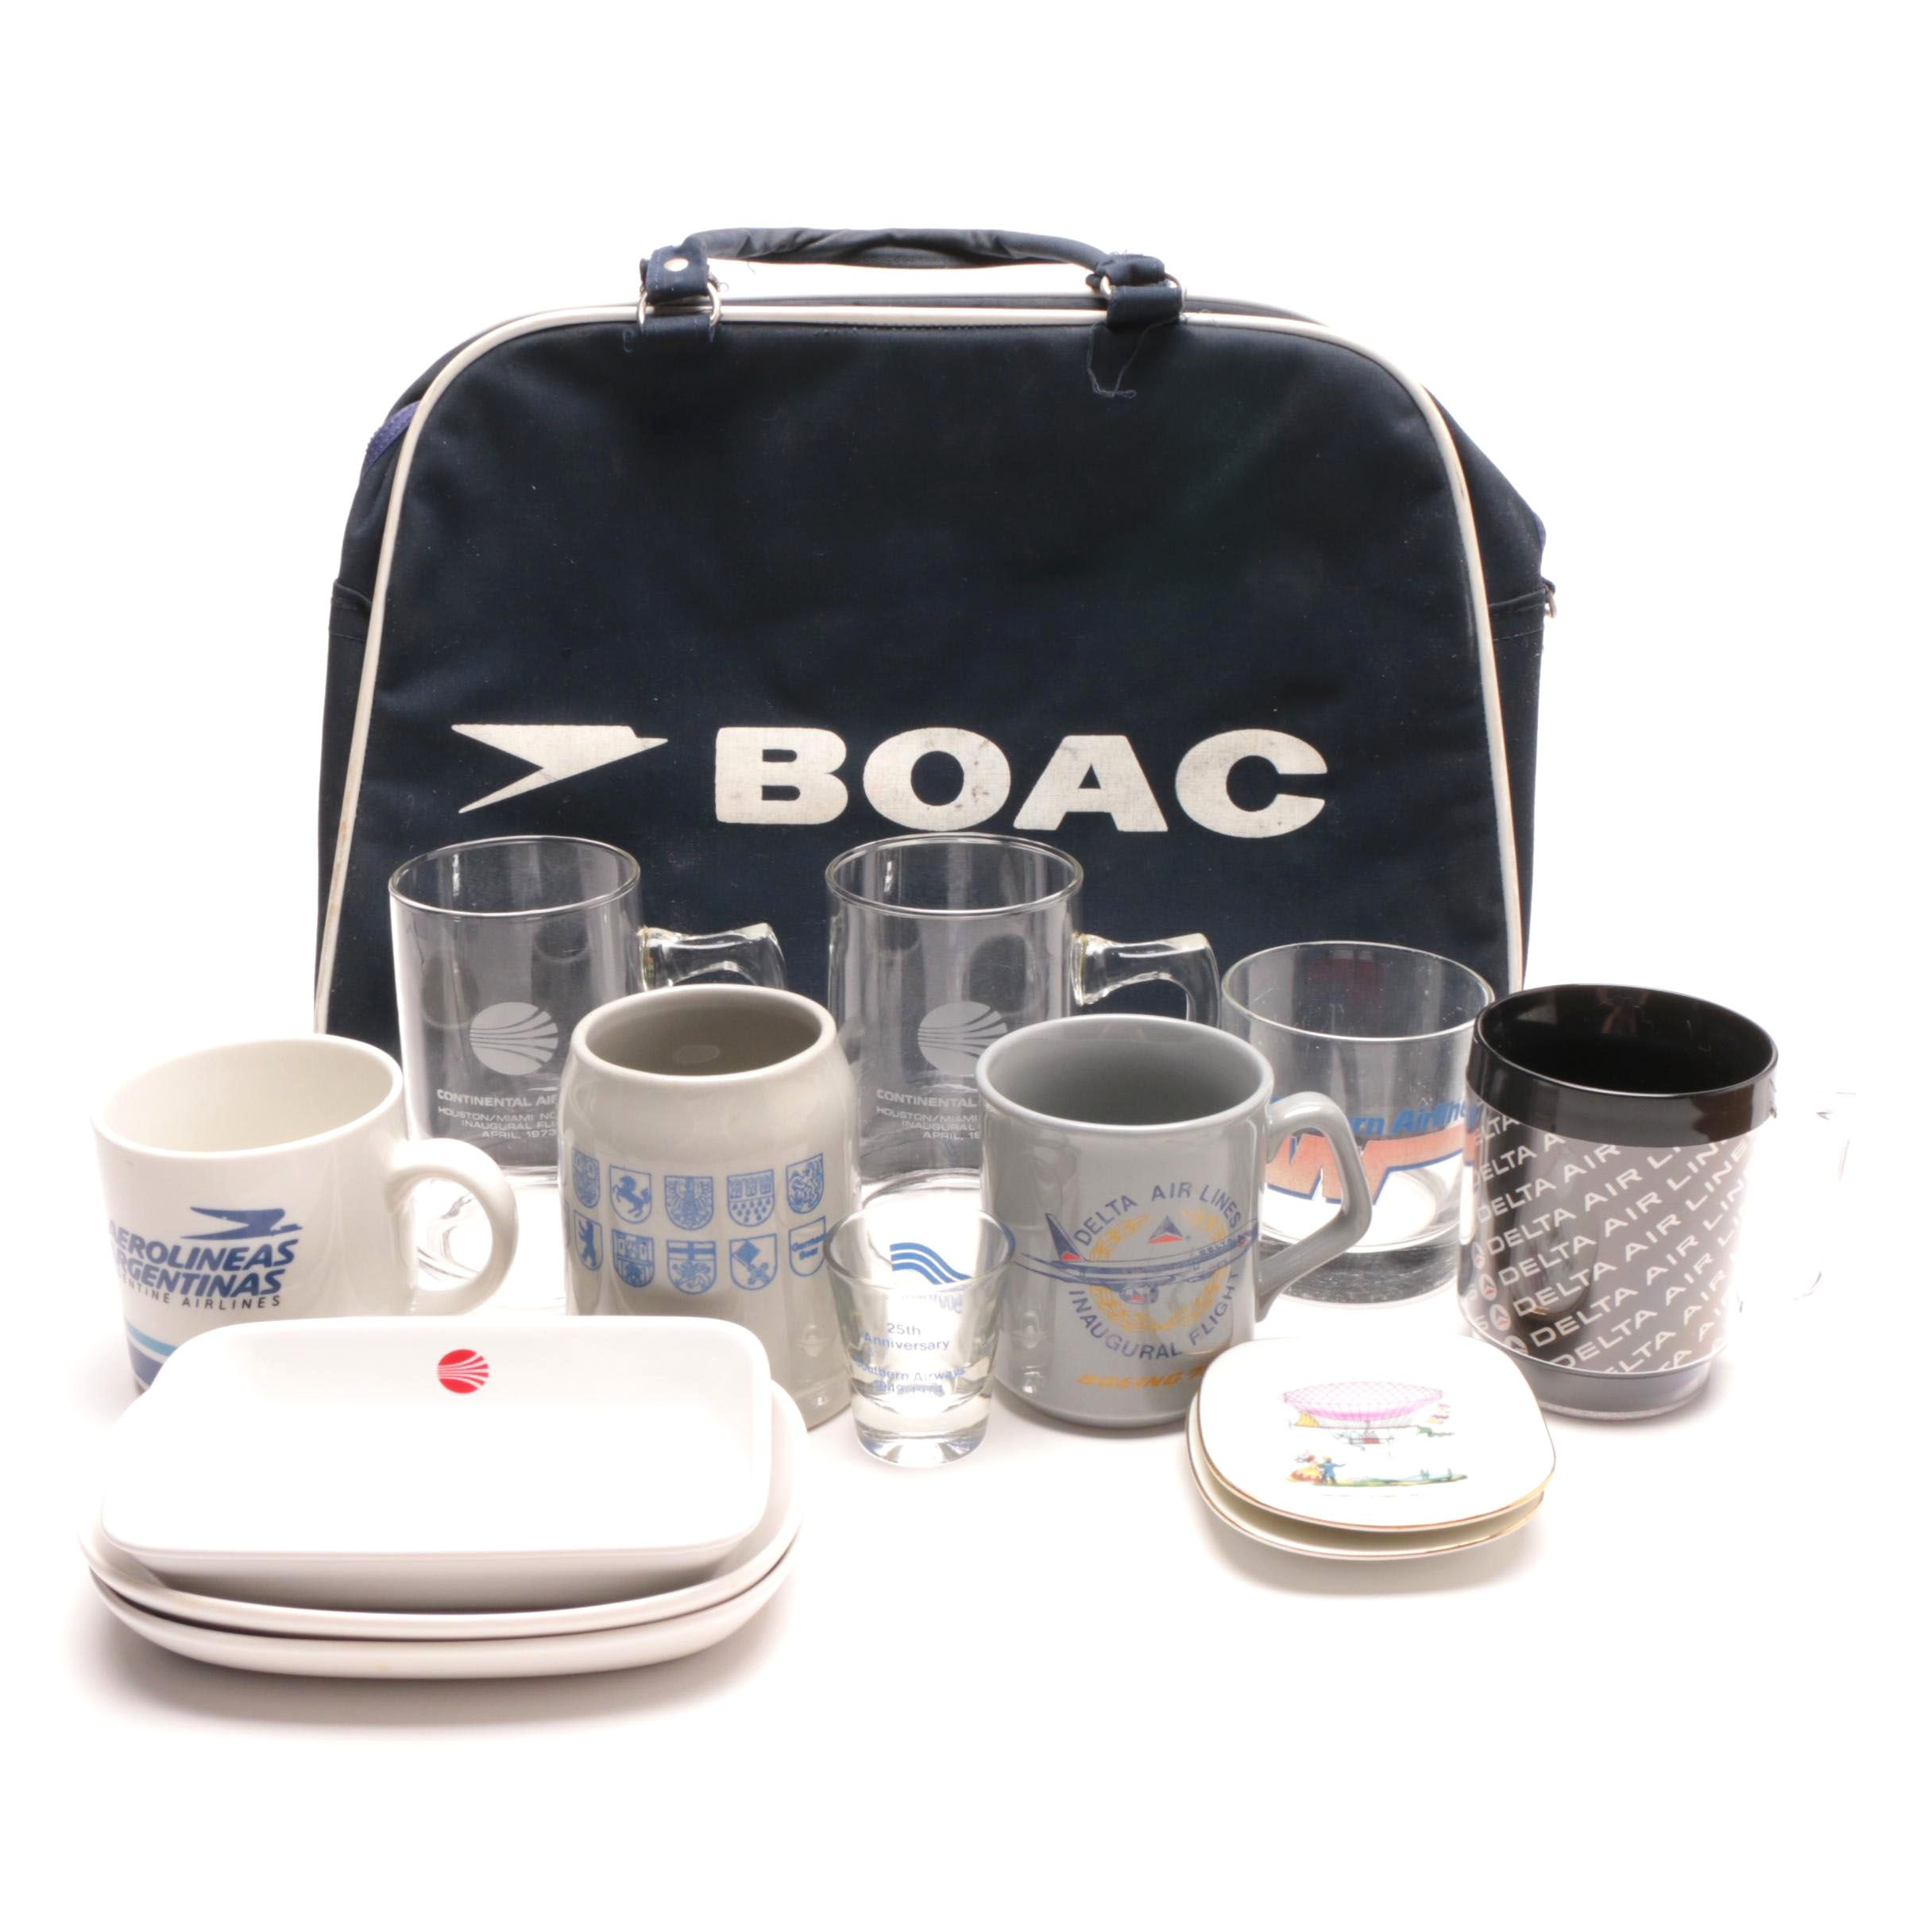 Vintage Airline Collectibles Featuring BOAC